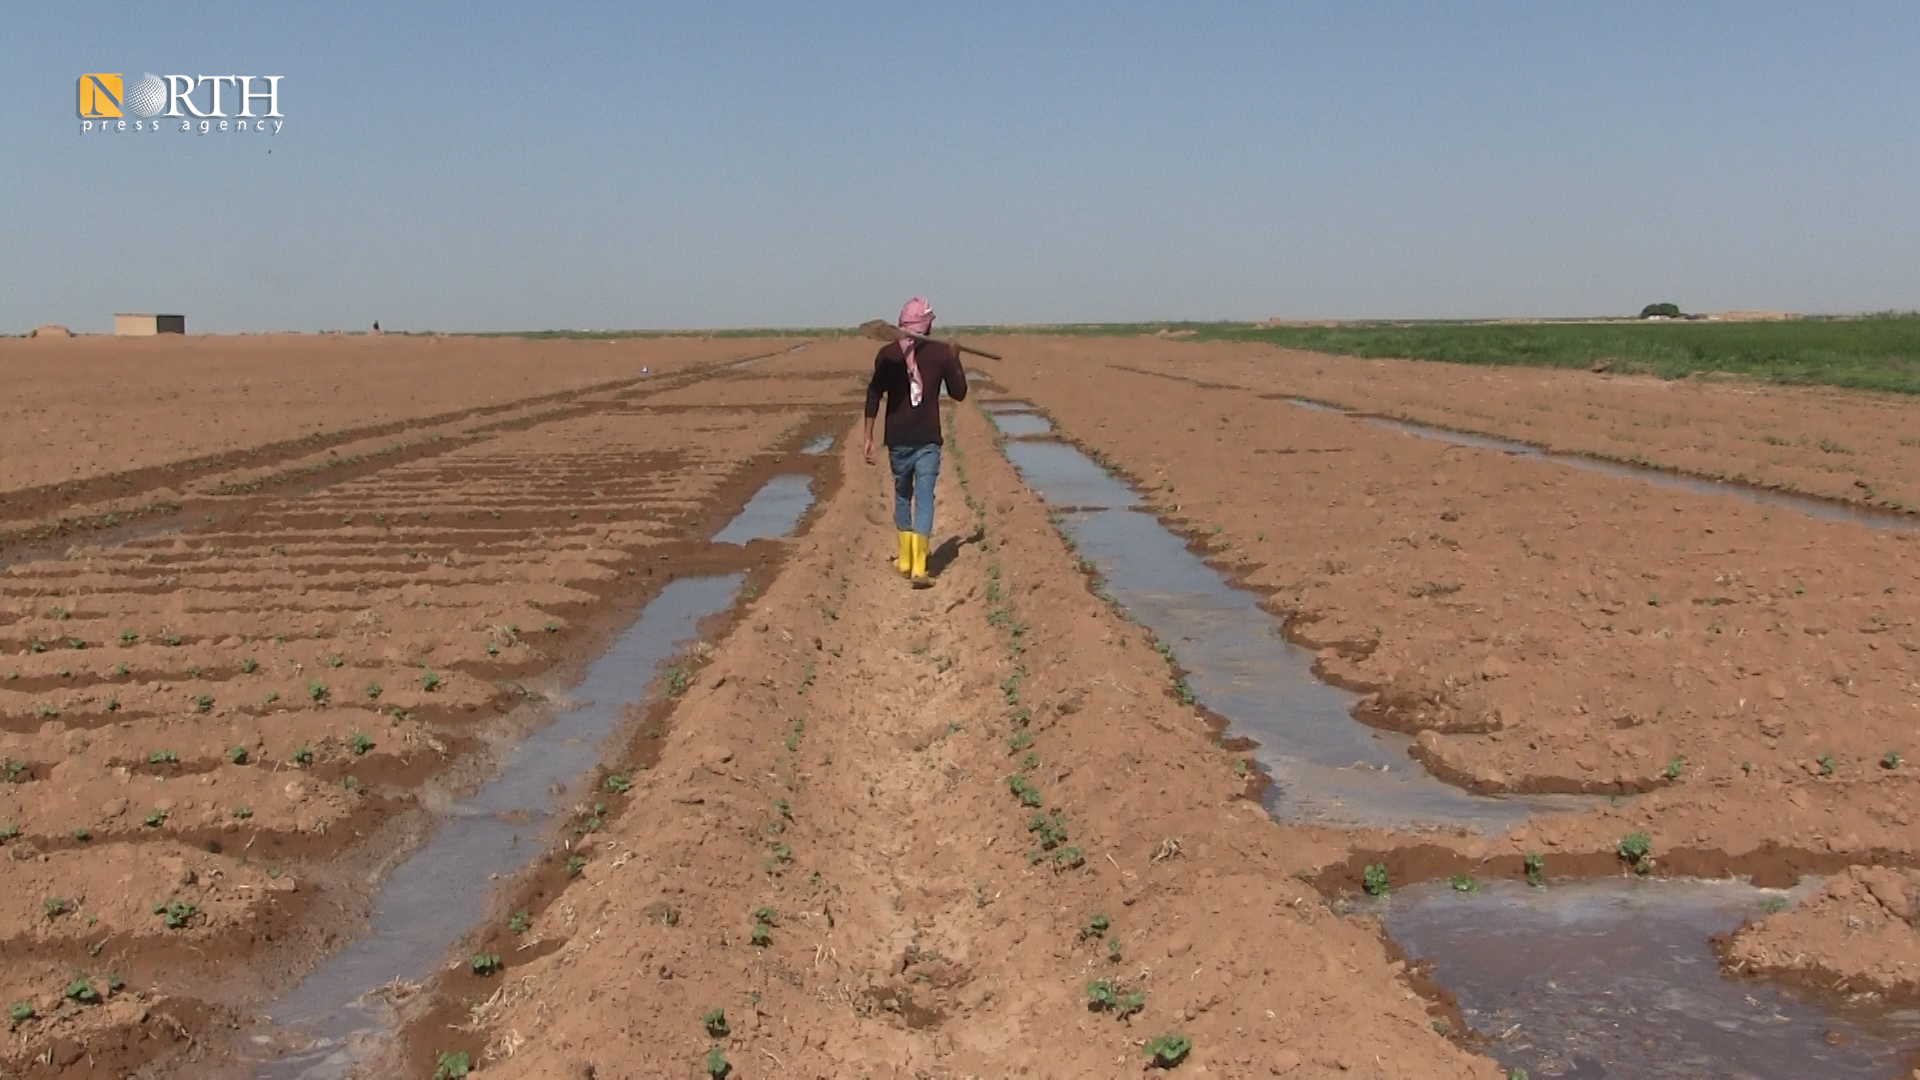 A farmer watering his lands with artesian well in the city of Raqqa – North Press